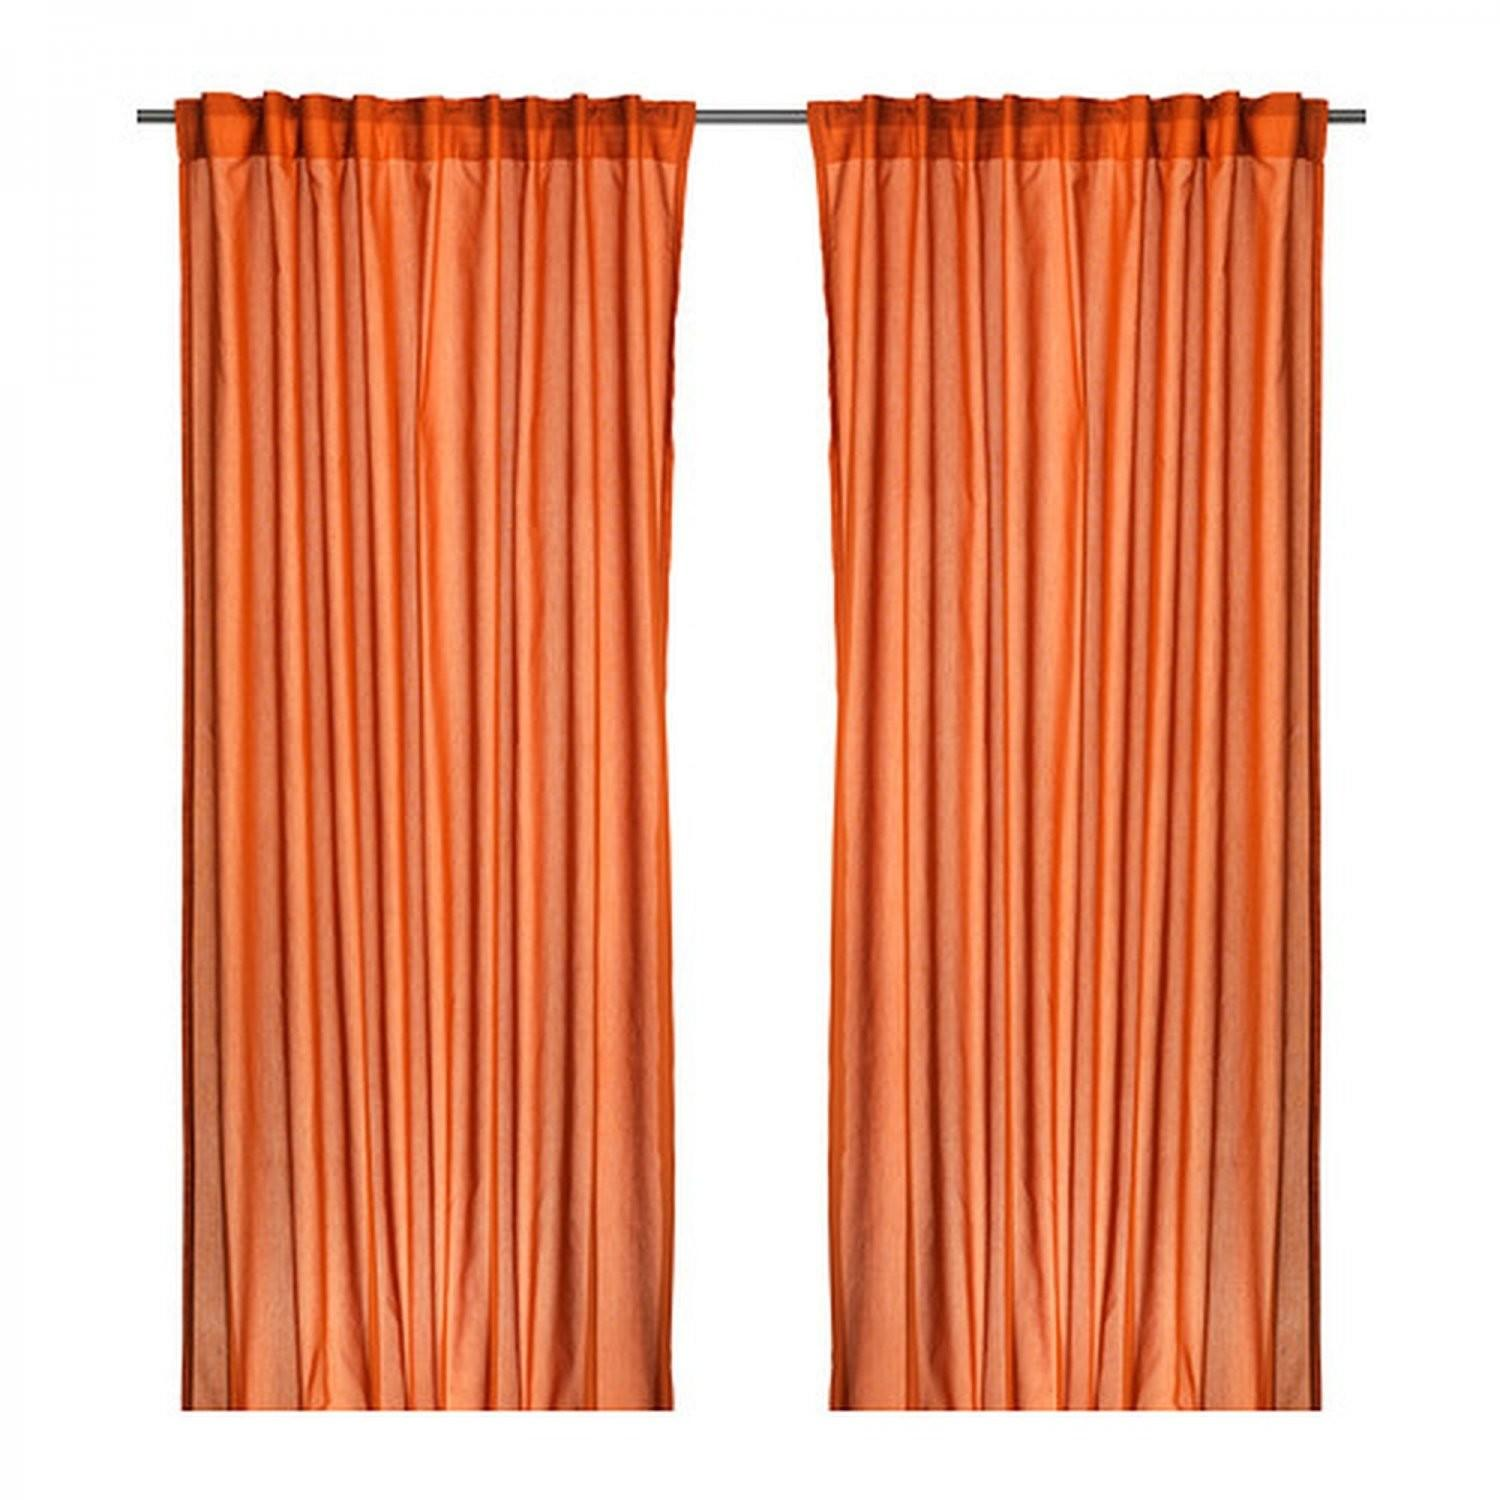 Vivan Curtains Drapes Dark Orange Panels